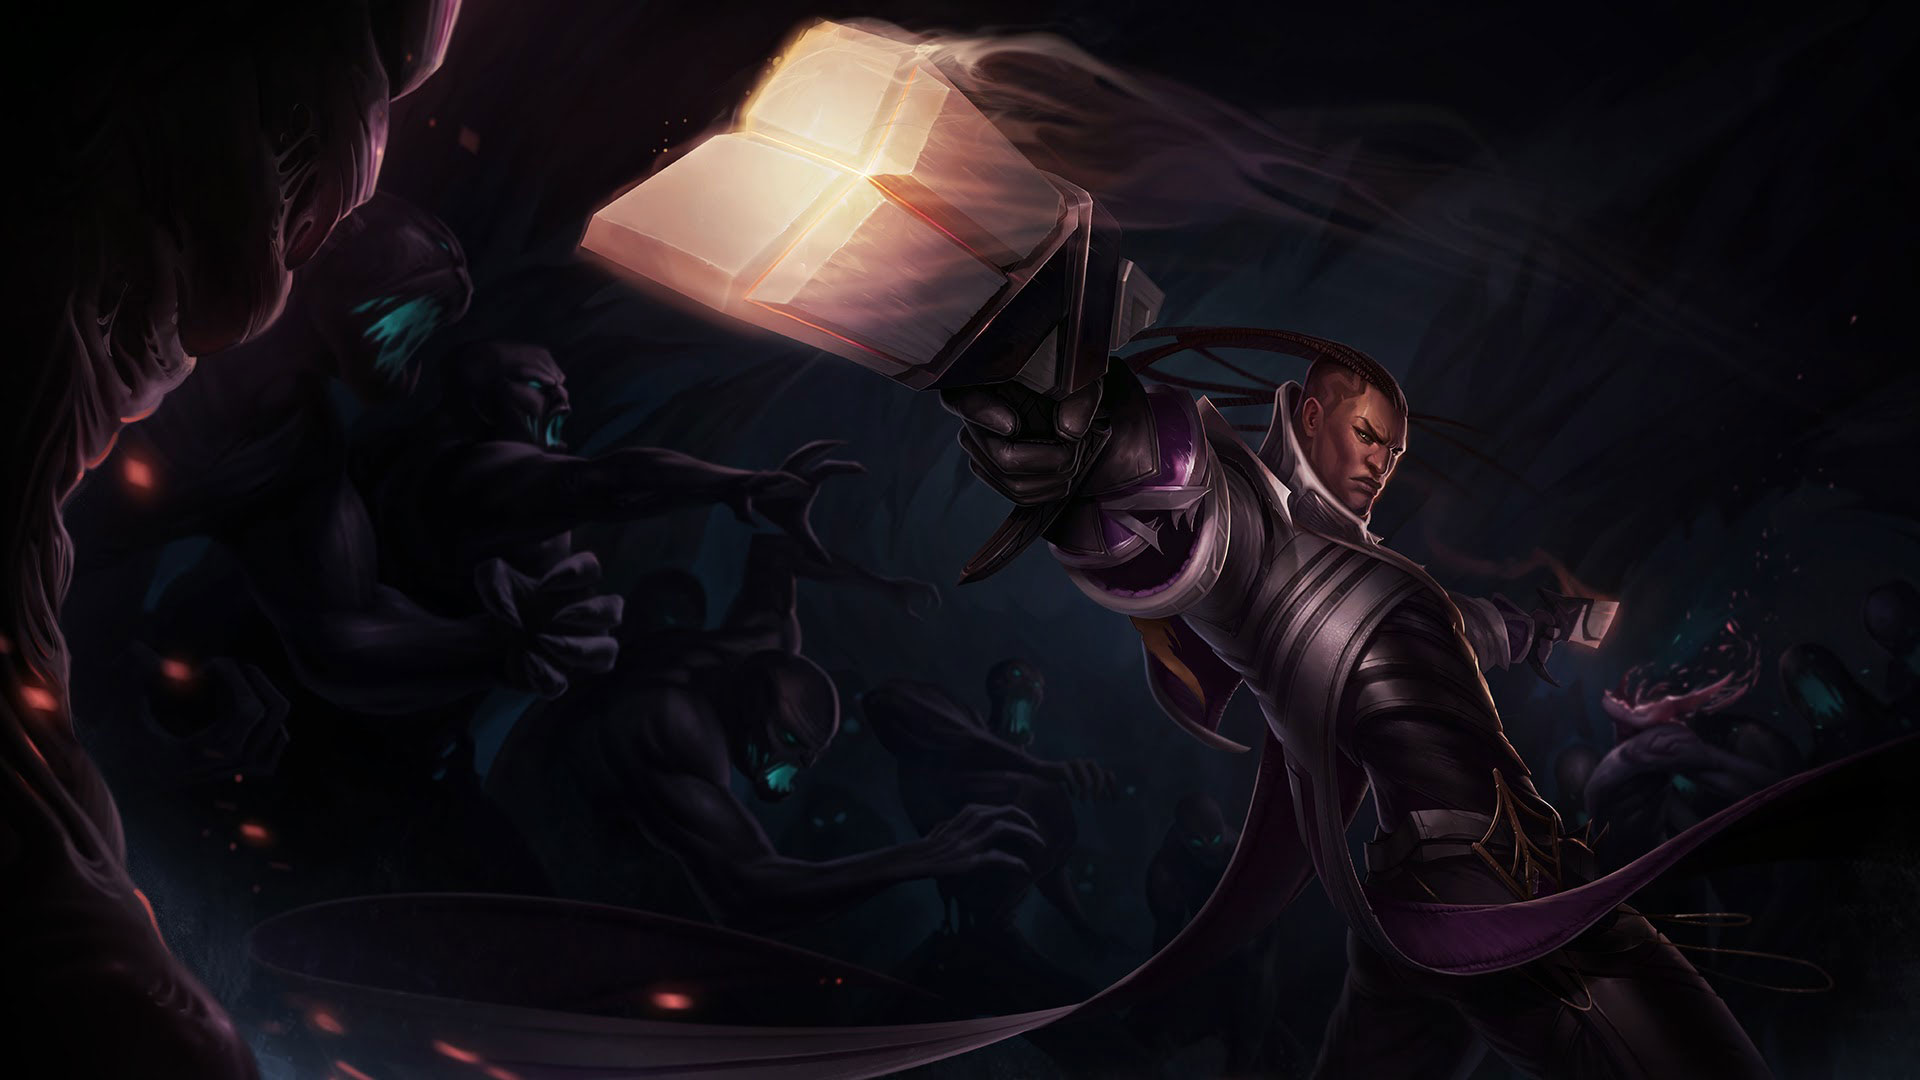 lucian-lol-artwork